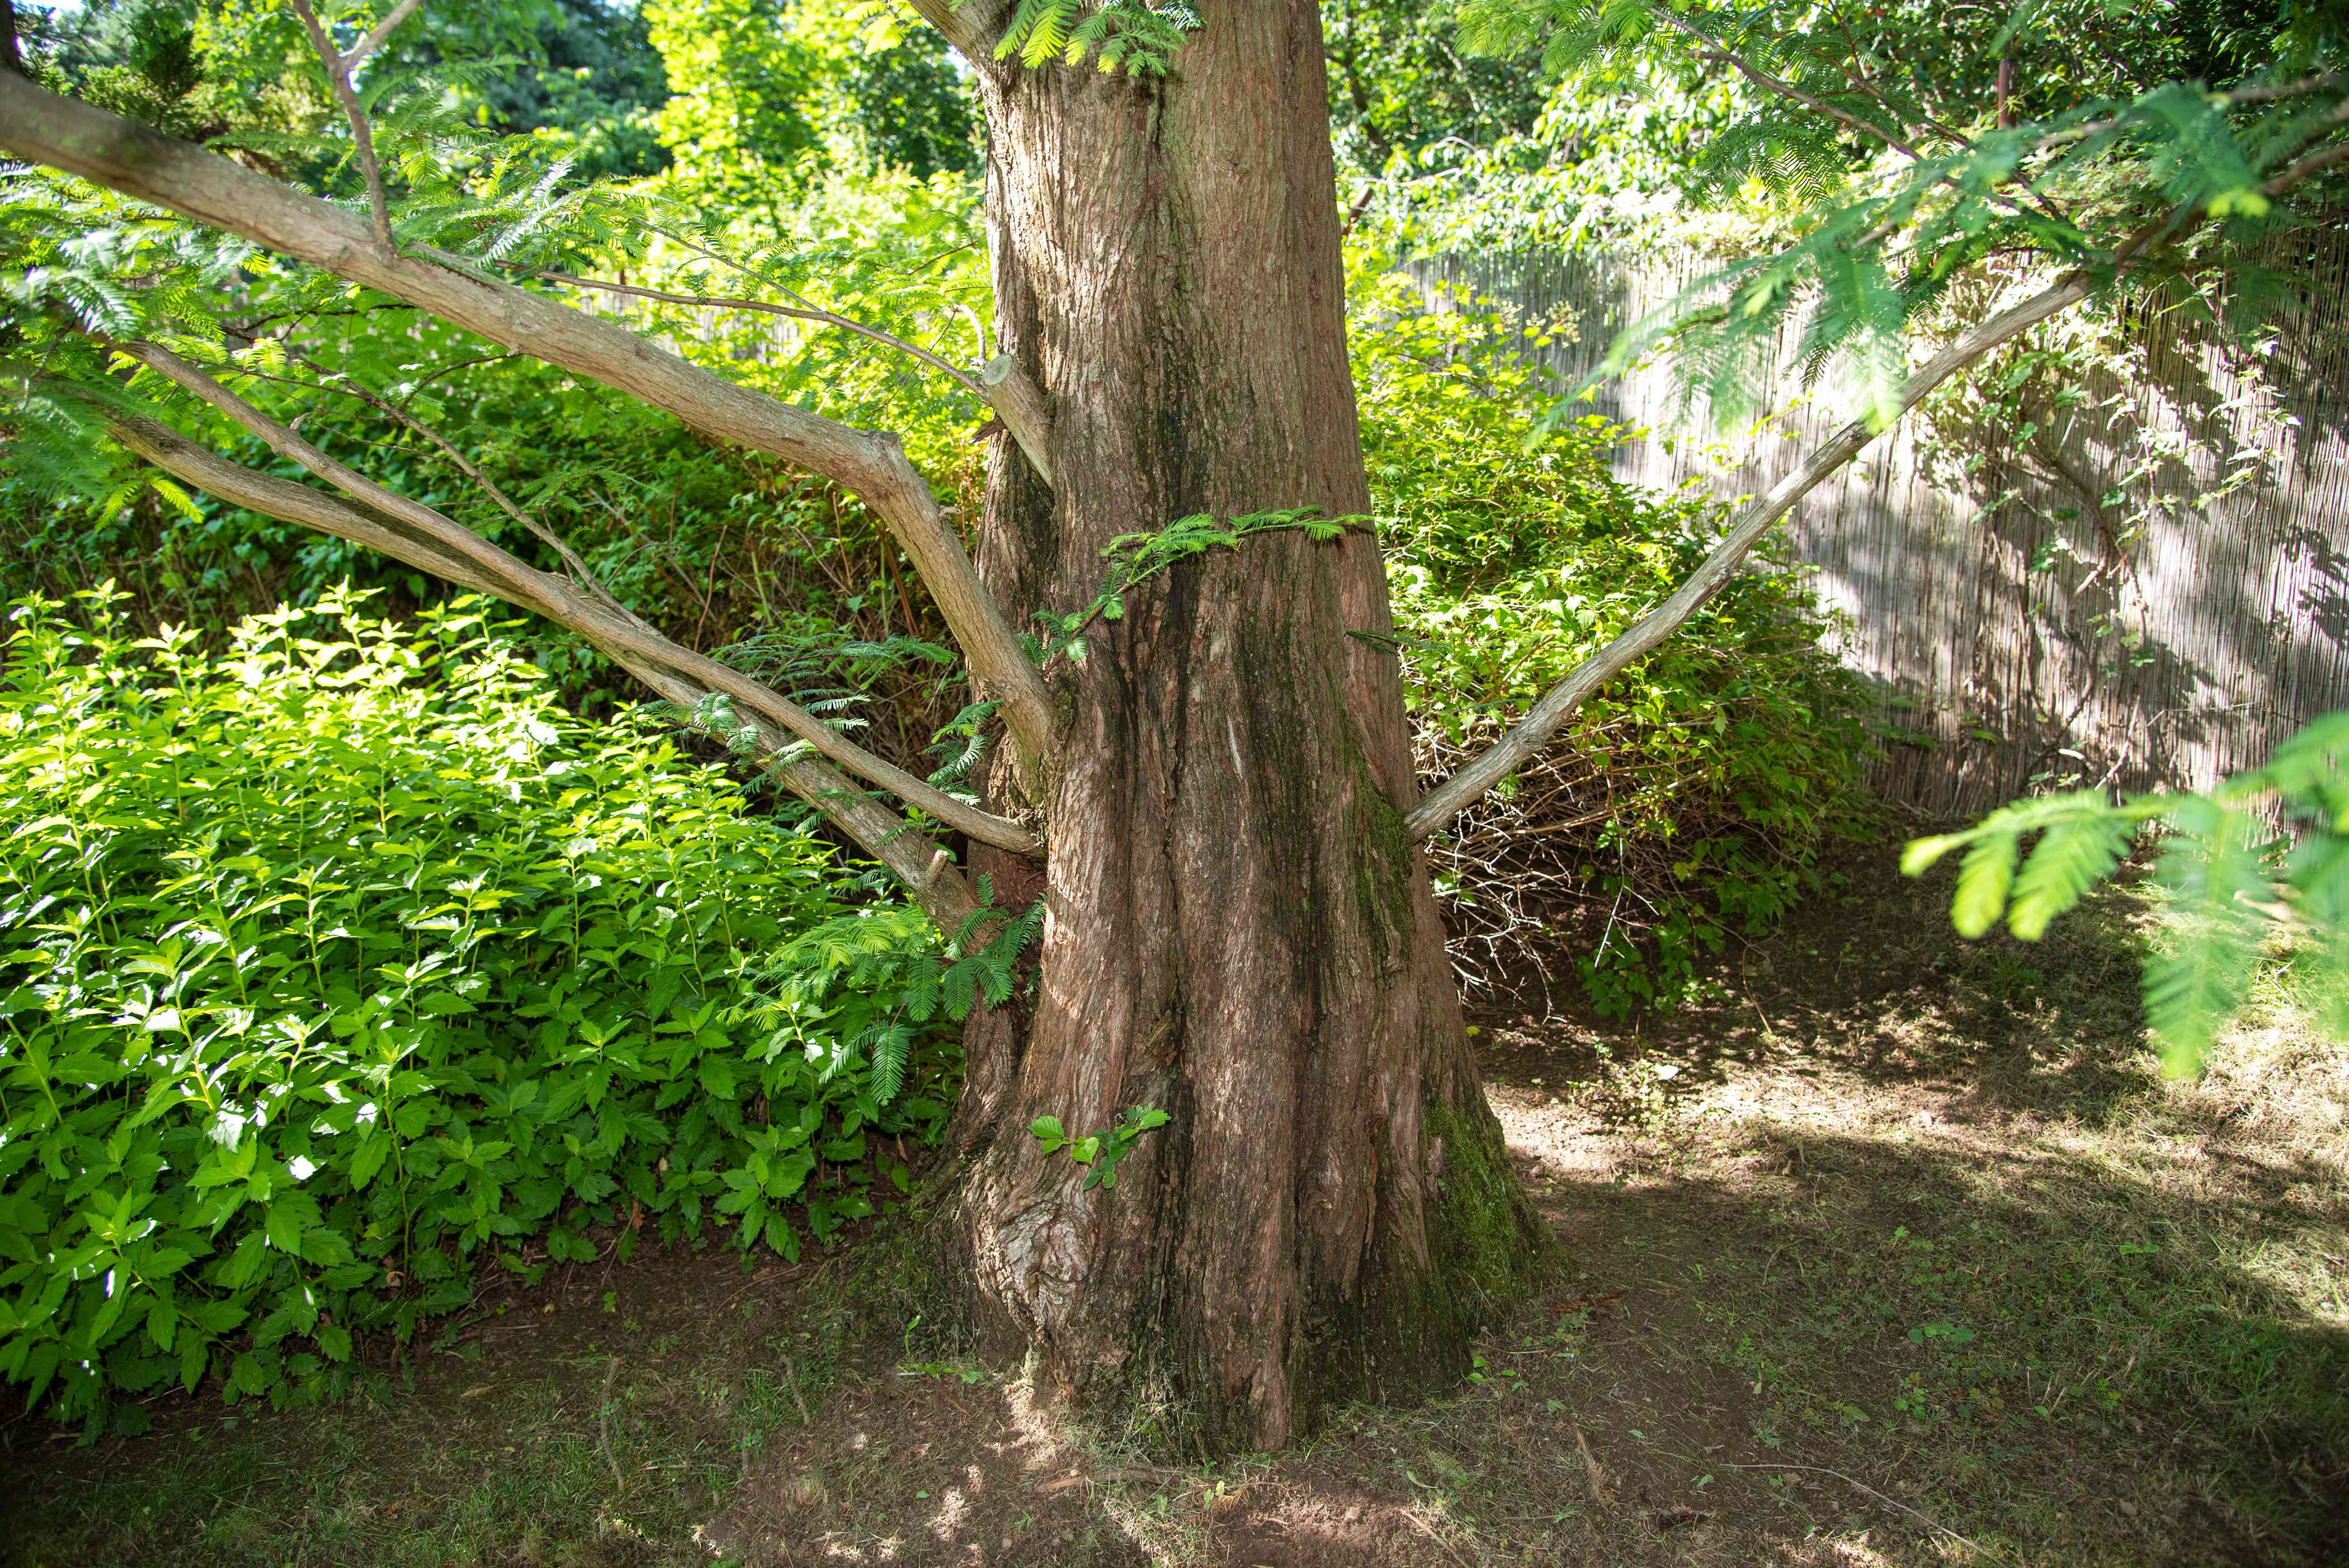 Dawn redwood tree trunk with wide flare and sprawling branches next to bushes